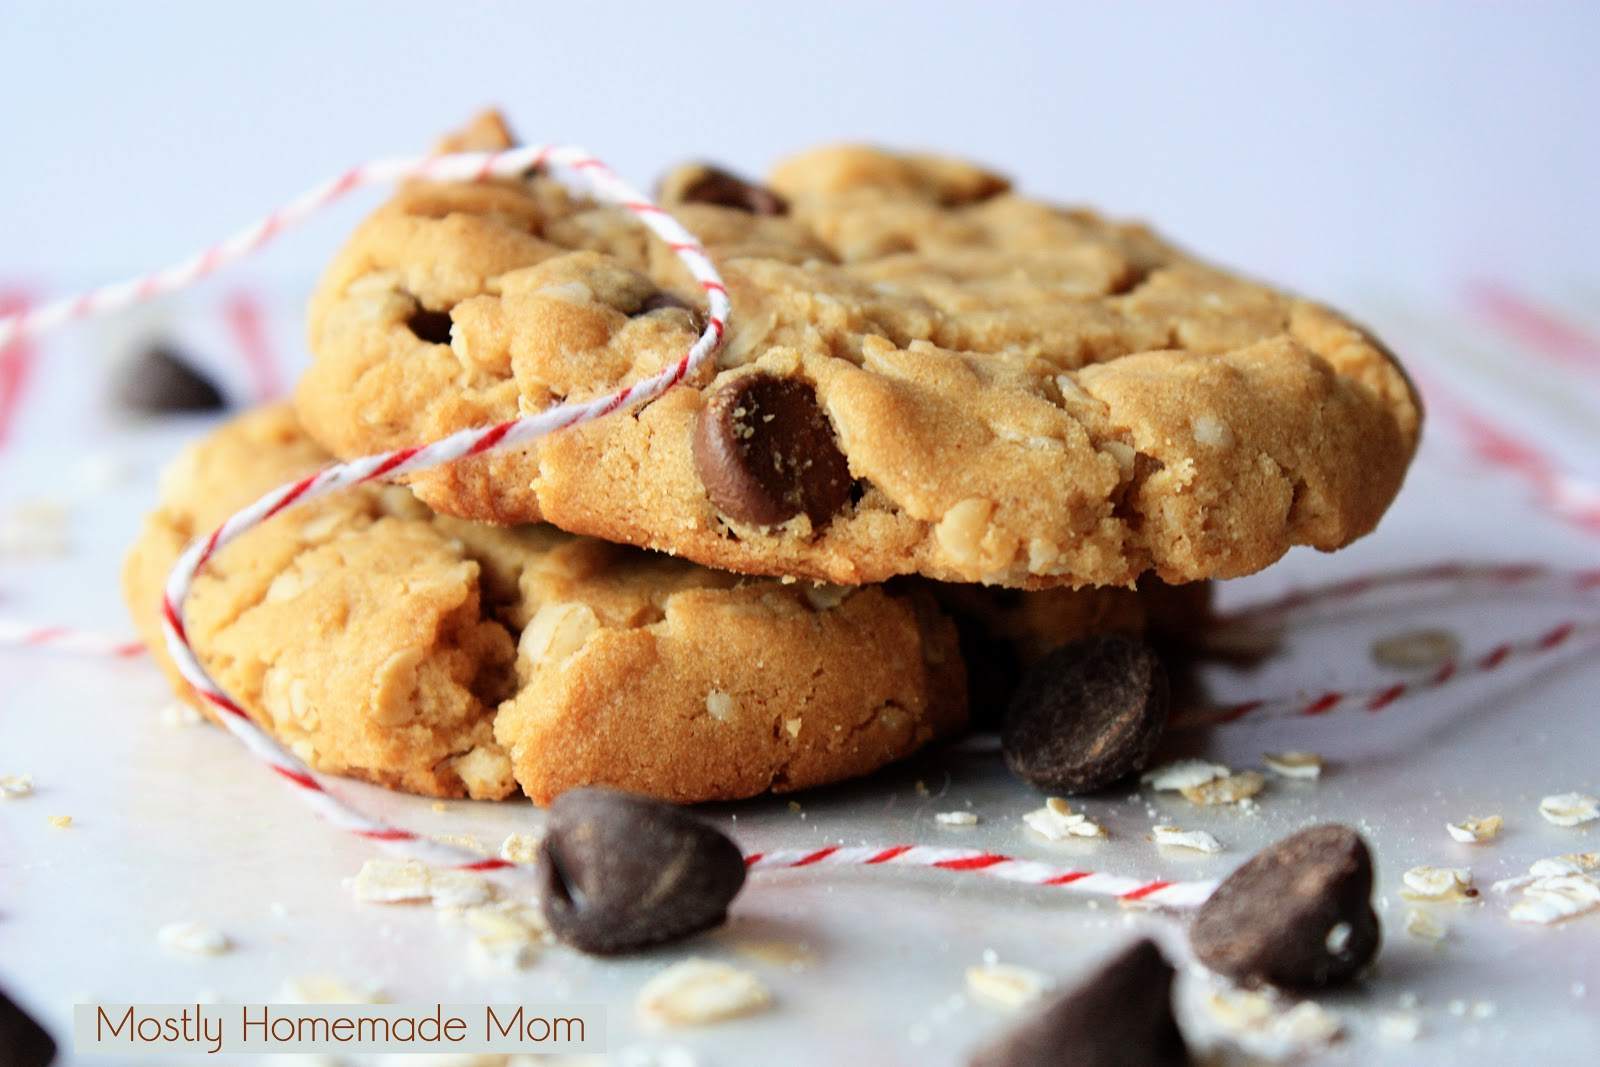 Oatmeal Peanut Butter Chocolate Chip Cookies | Mostly Homemade Mom